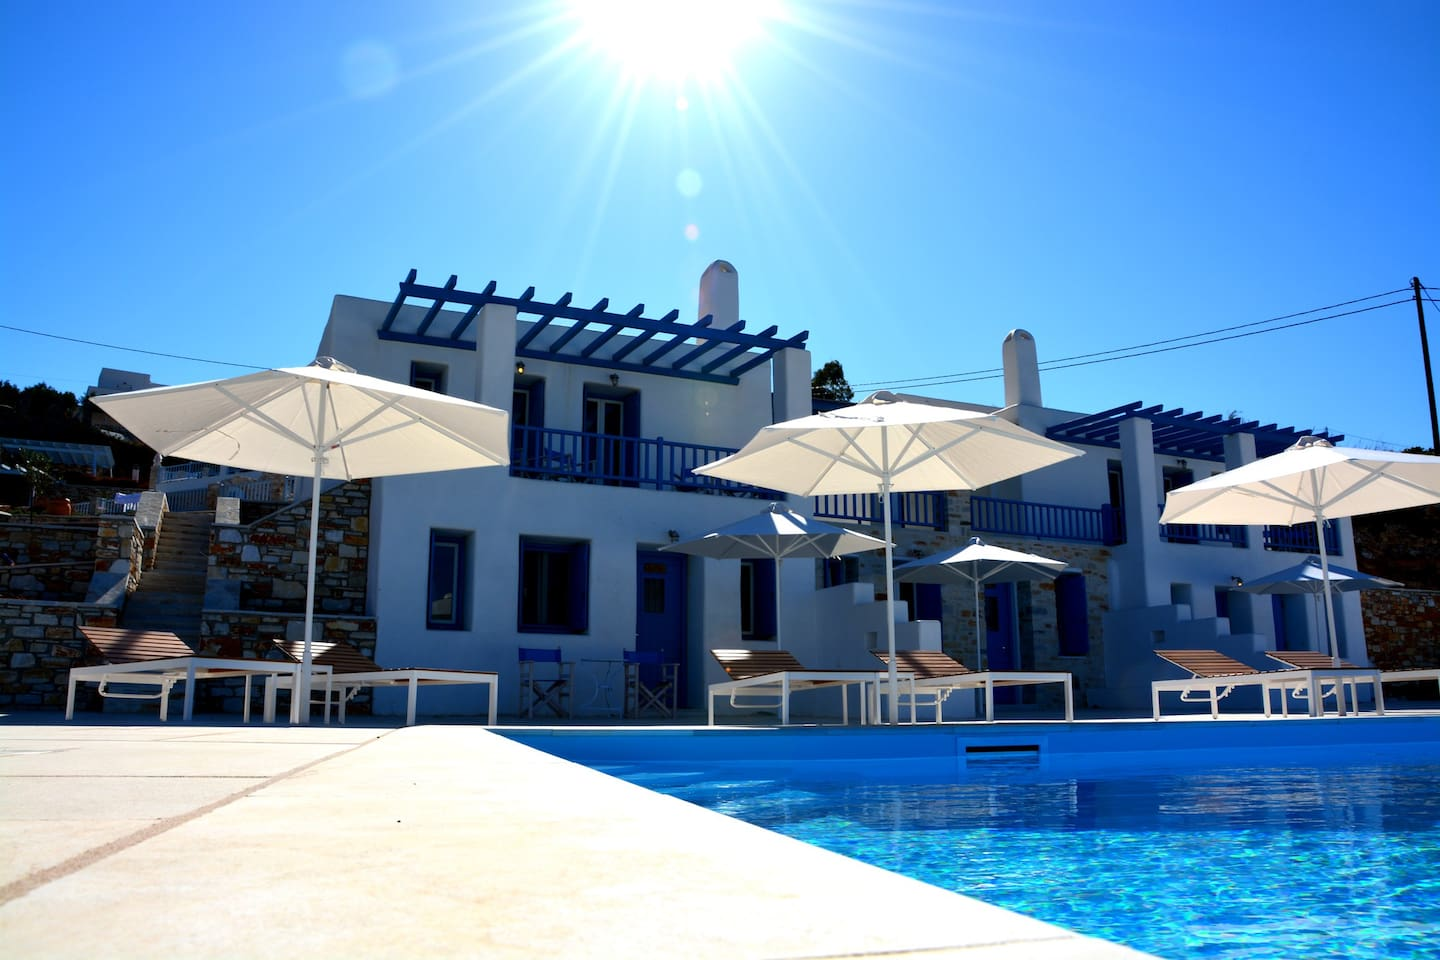 """The house named """"Chrissi Akti"""" has its own balcony with Sea View, Parking and aveliable sun loungers and shady umbrellas near the pool."""